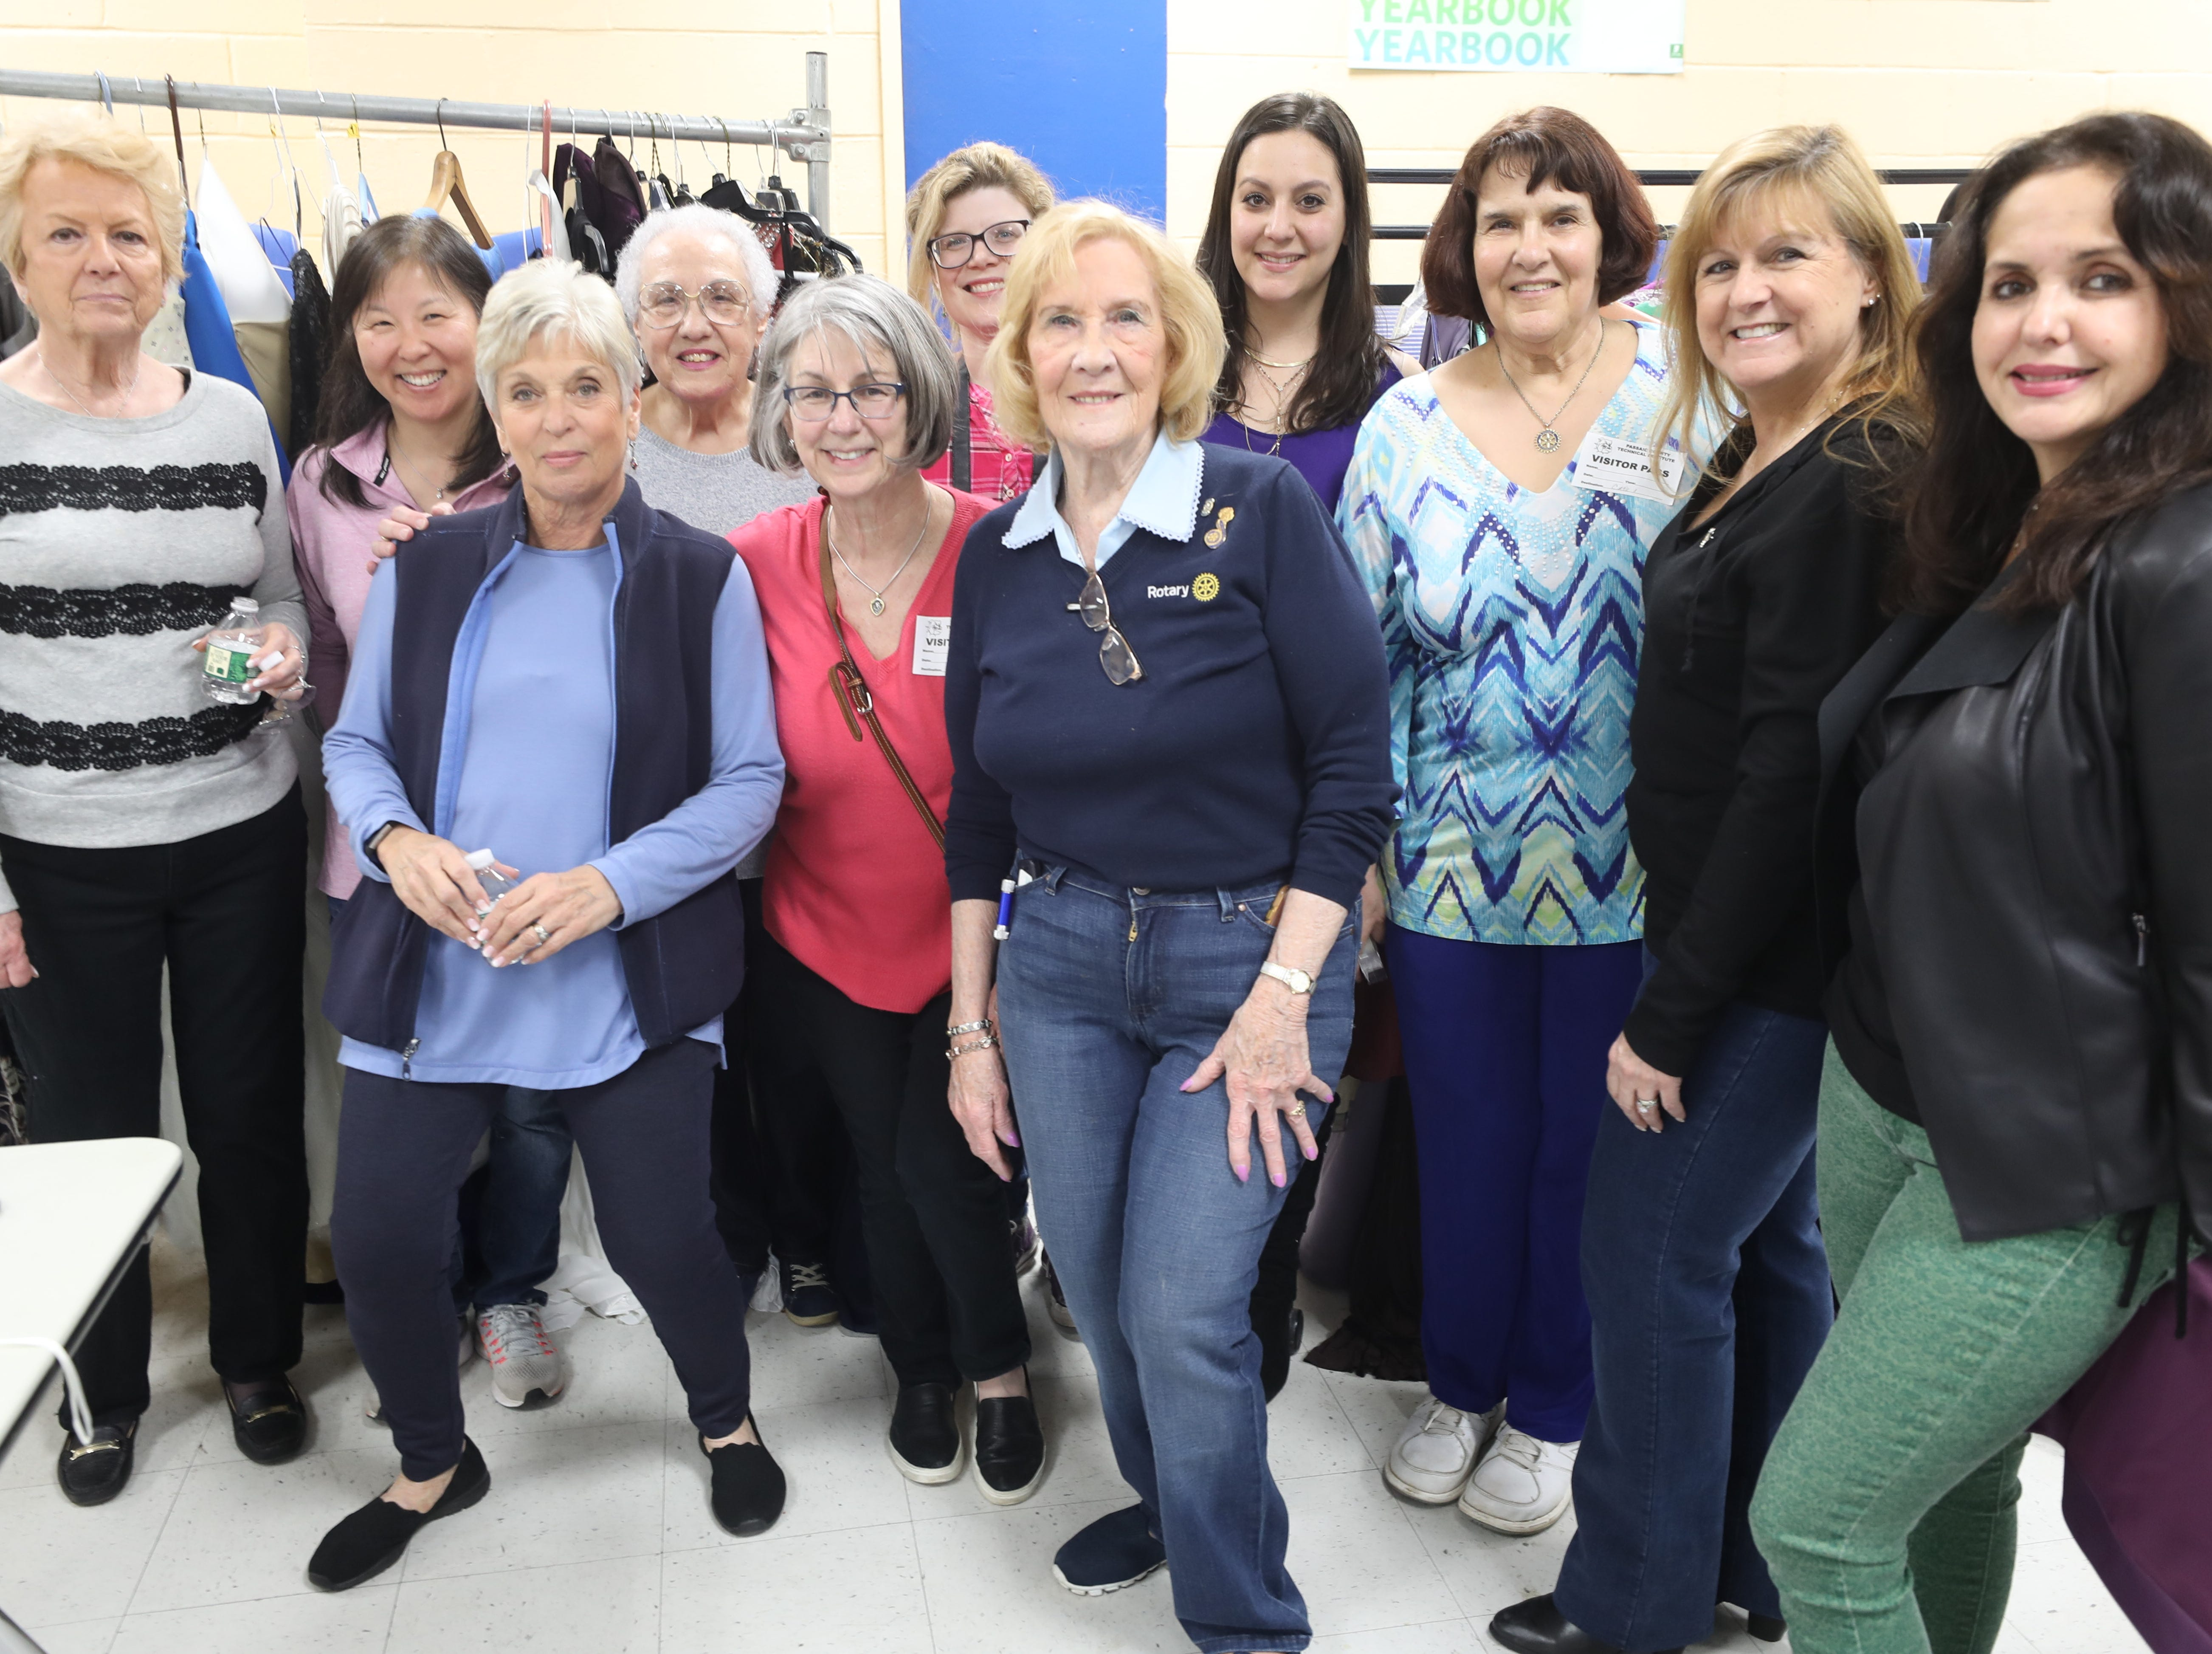 Rotary Club members and other volunteers at the annual Prom Gown Giveaway held at Passaic County Technical Institute.